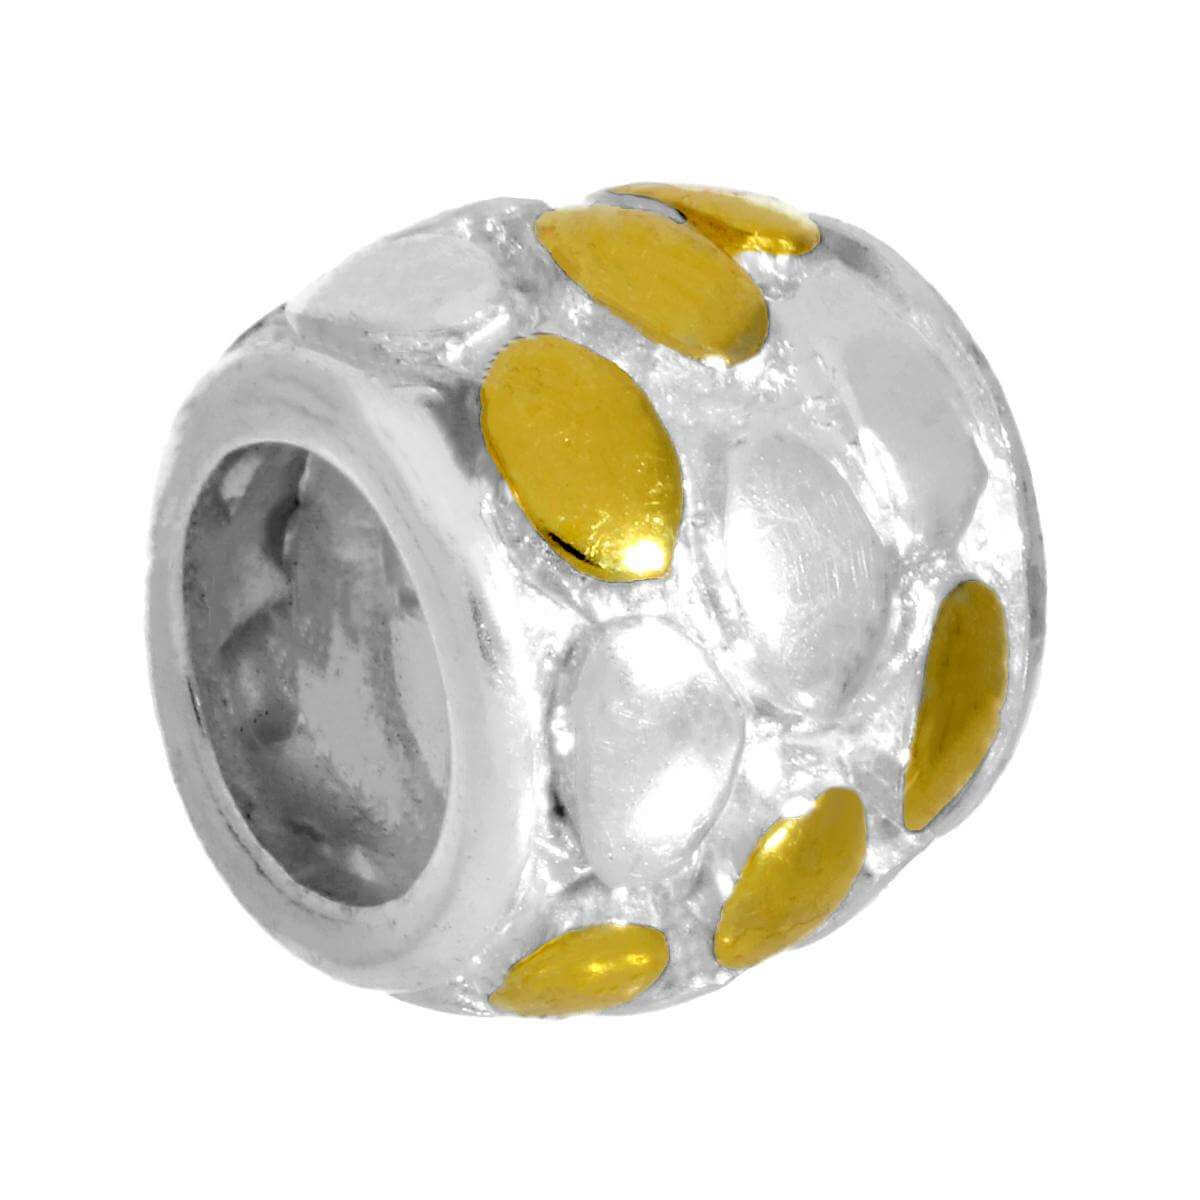 Sterling Silver White & Yellow Oval Patterned Bead Charm